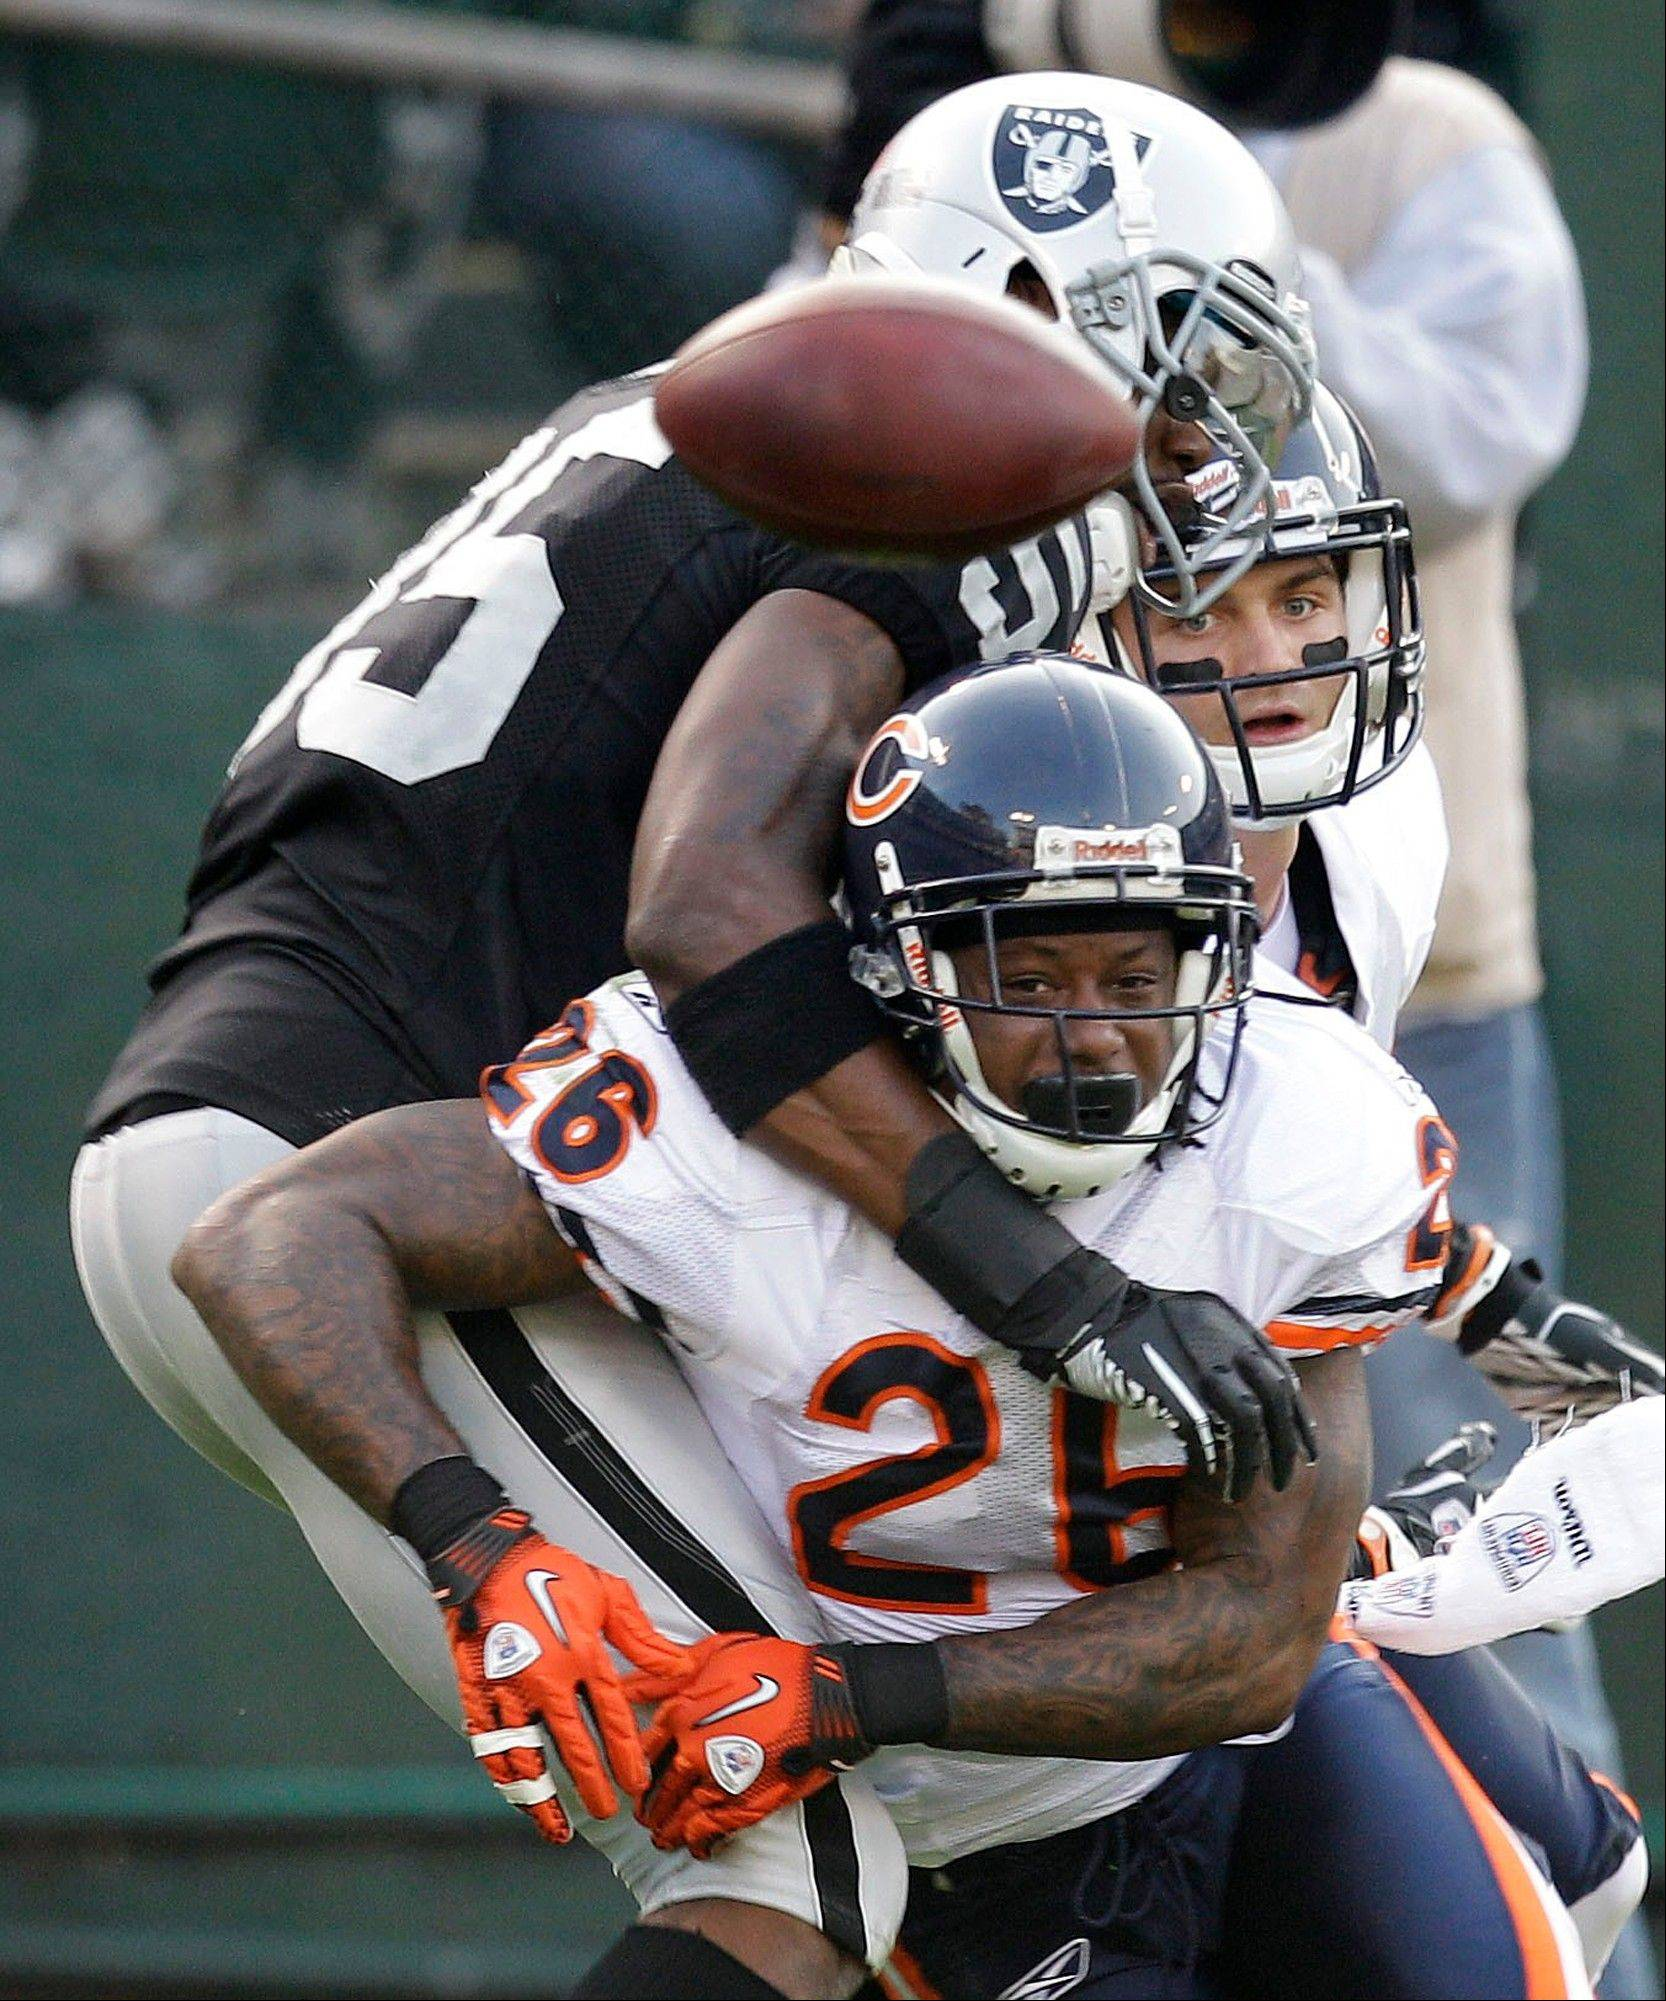 Bears cornerback Tim Jennings breaks up a pass intended for Oakland Raiders wide receiver Darrius Heyward-Bey during the third quarter of the Bears' loss Sunday.